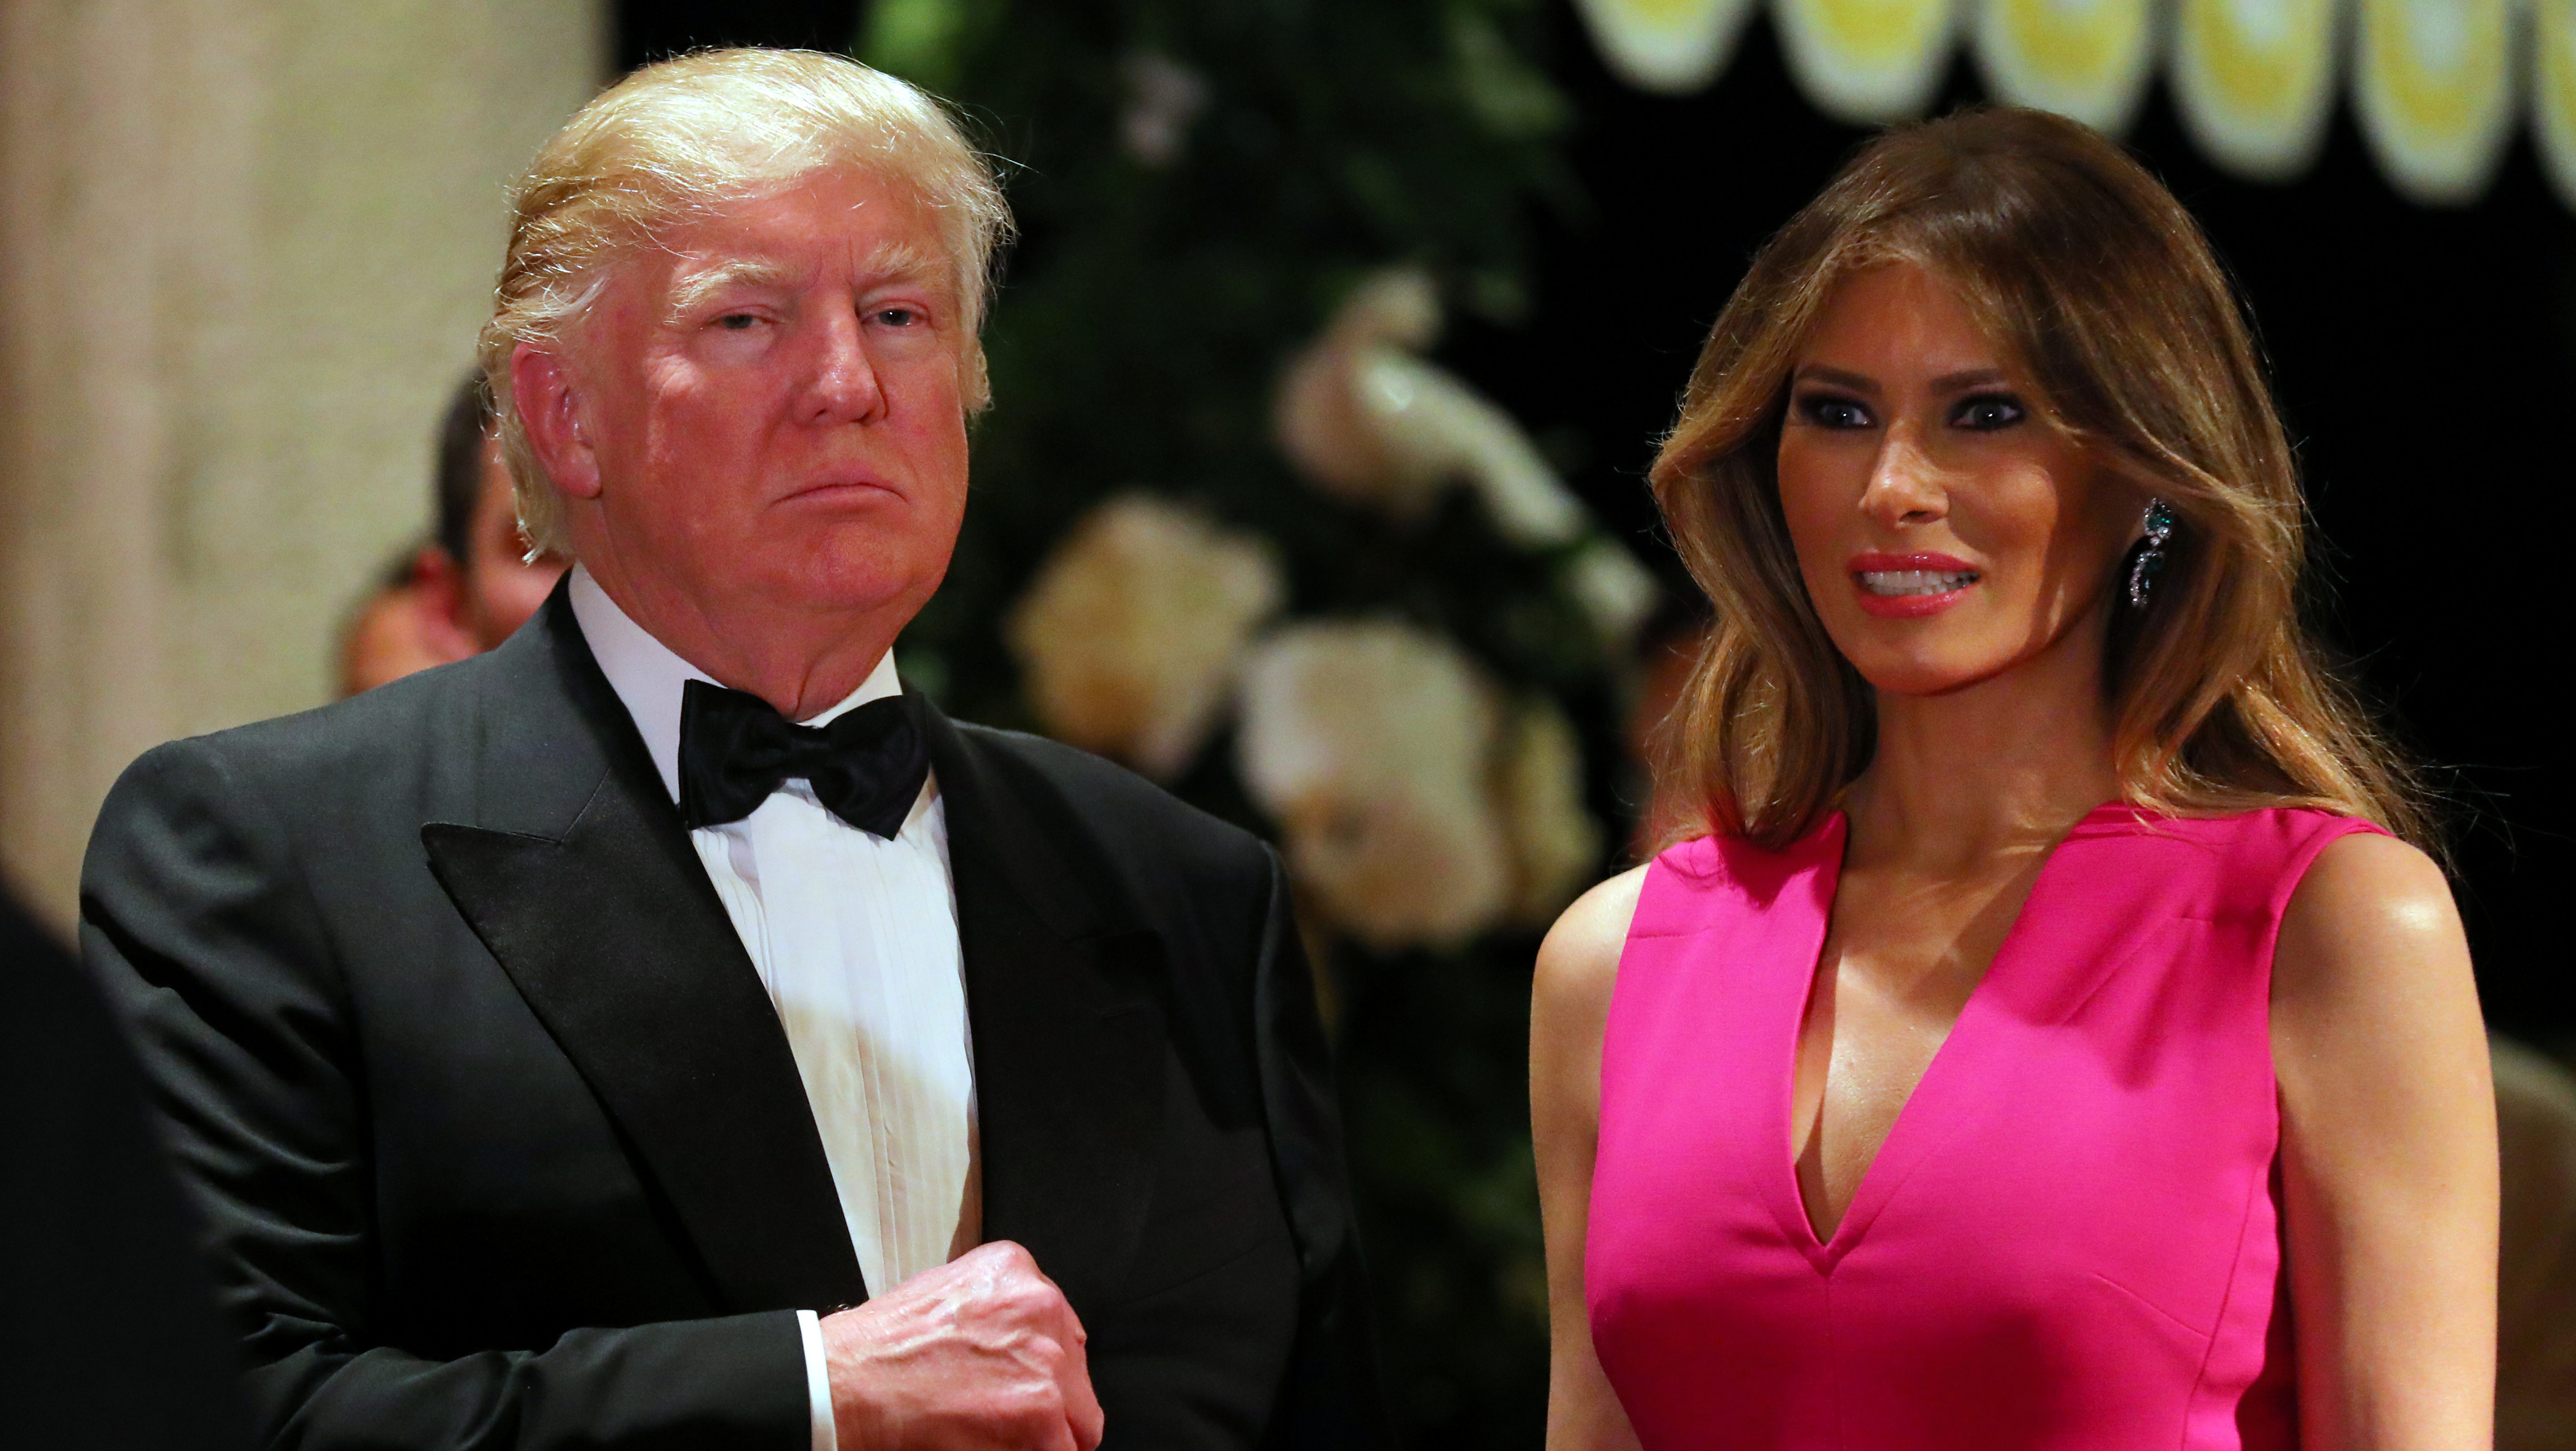 U.S. President Donald Trump and First Lady Melania Trump attend the 60th Annual Red Cross Gala at Mar-a-Lago club in Palm Beach, Florida, U.S., February 4, 2017.